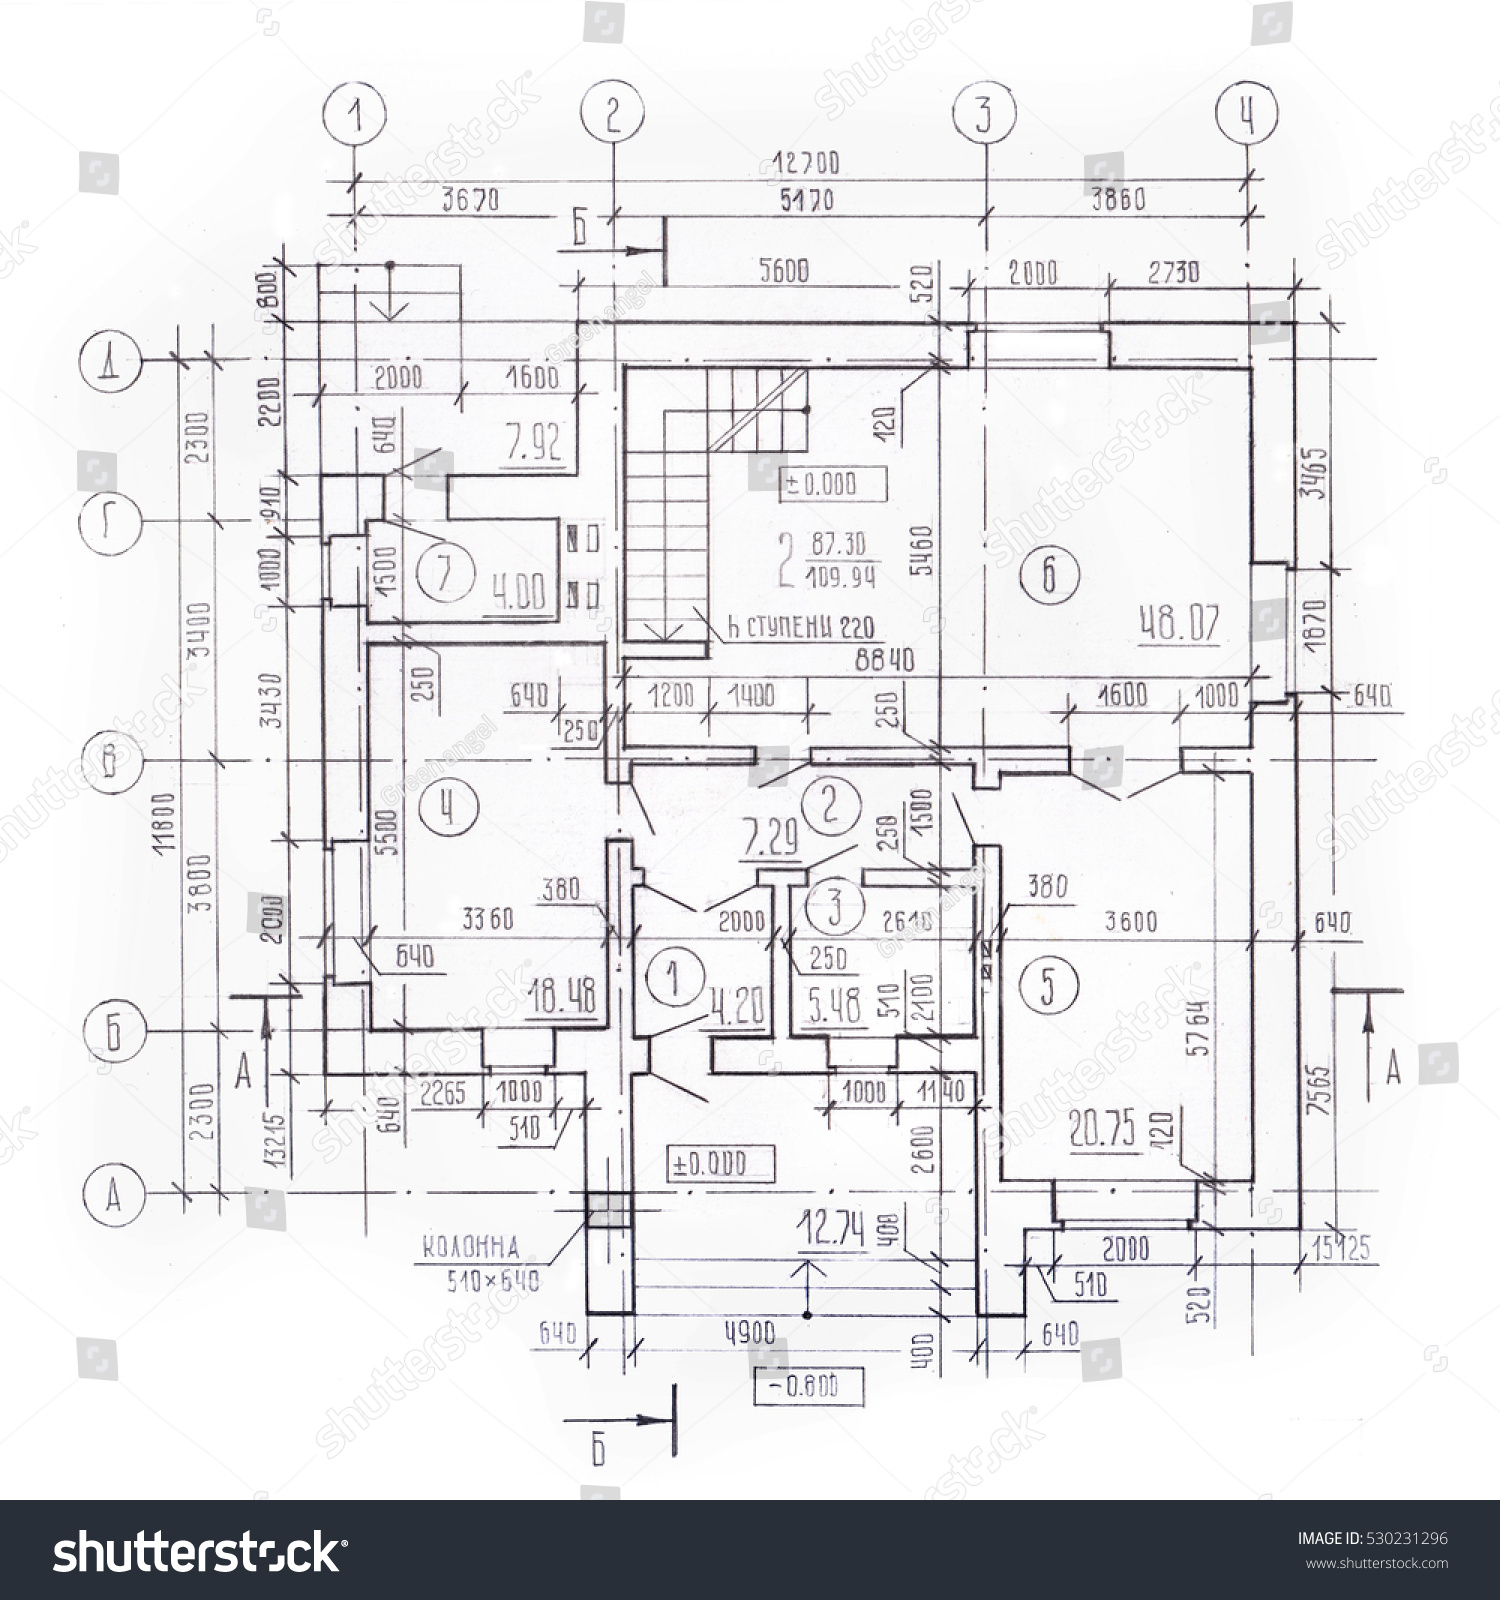 Architectural plan cottage floor plan top stock illustration architectural plan of the cottage floor plan top view detailed working drawing malvernweather Image collections